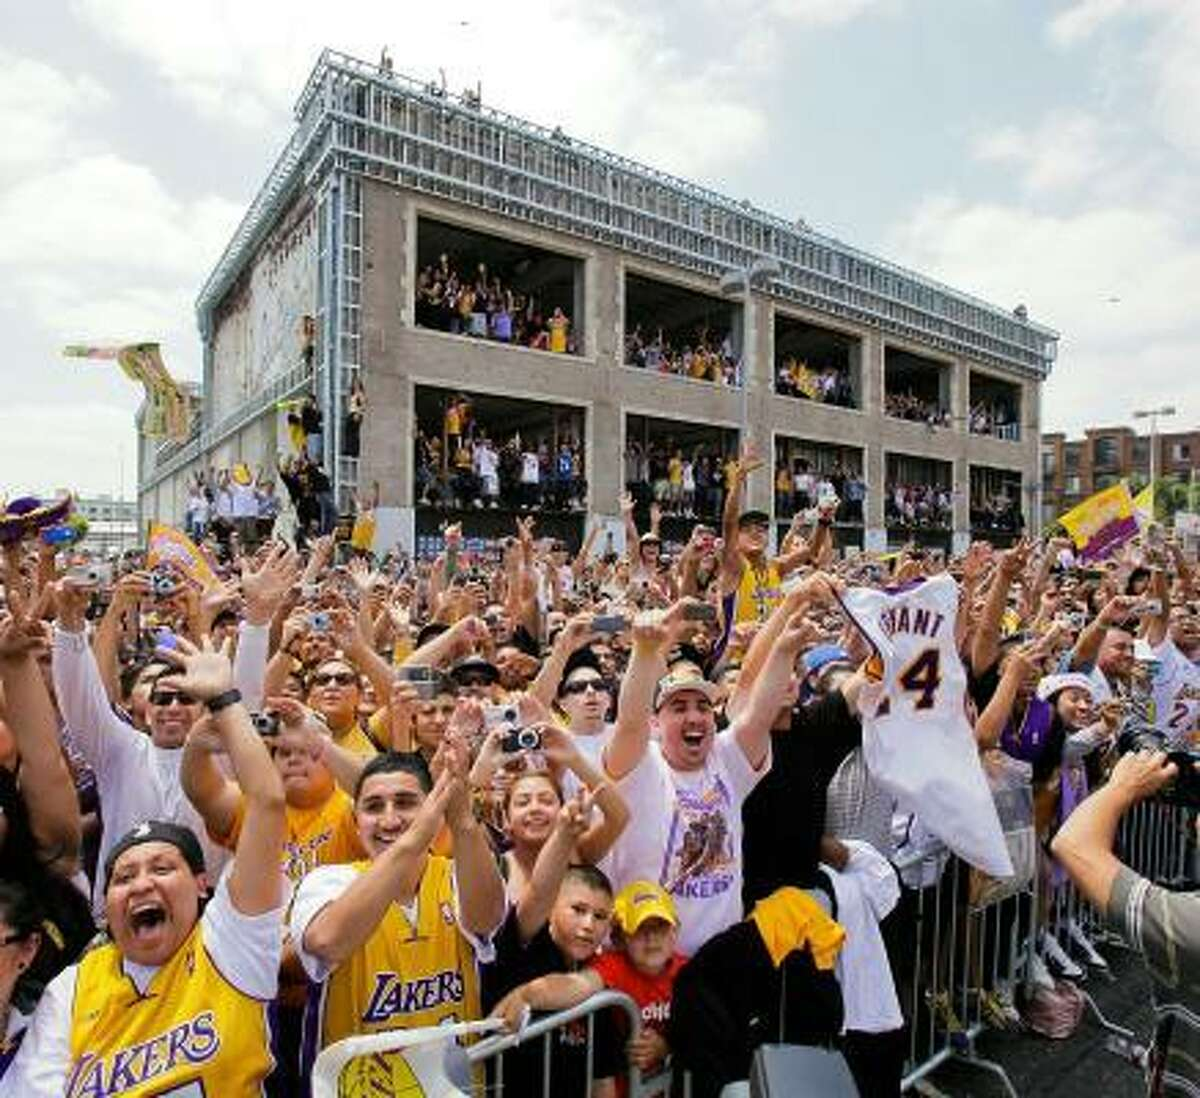 No. 3 LOS ANGELES L.A. fans have a laid-back rep but they can't help but be excited about the Lakers, the back-to-back NBA champions. The Dodgers also have a strong following, and though the city doesn't have an NFL team, some might argue it does have a pro football team ... yes, you, Southern Cal.